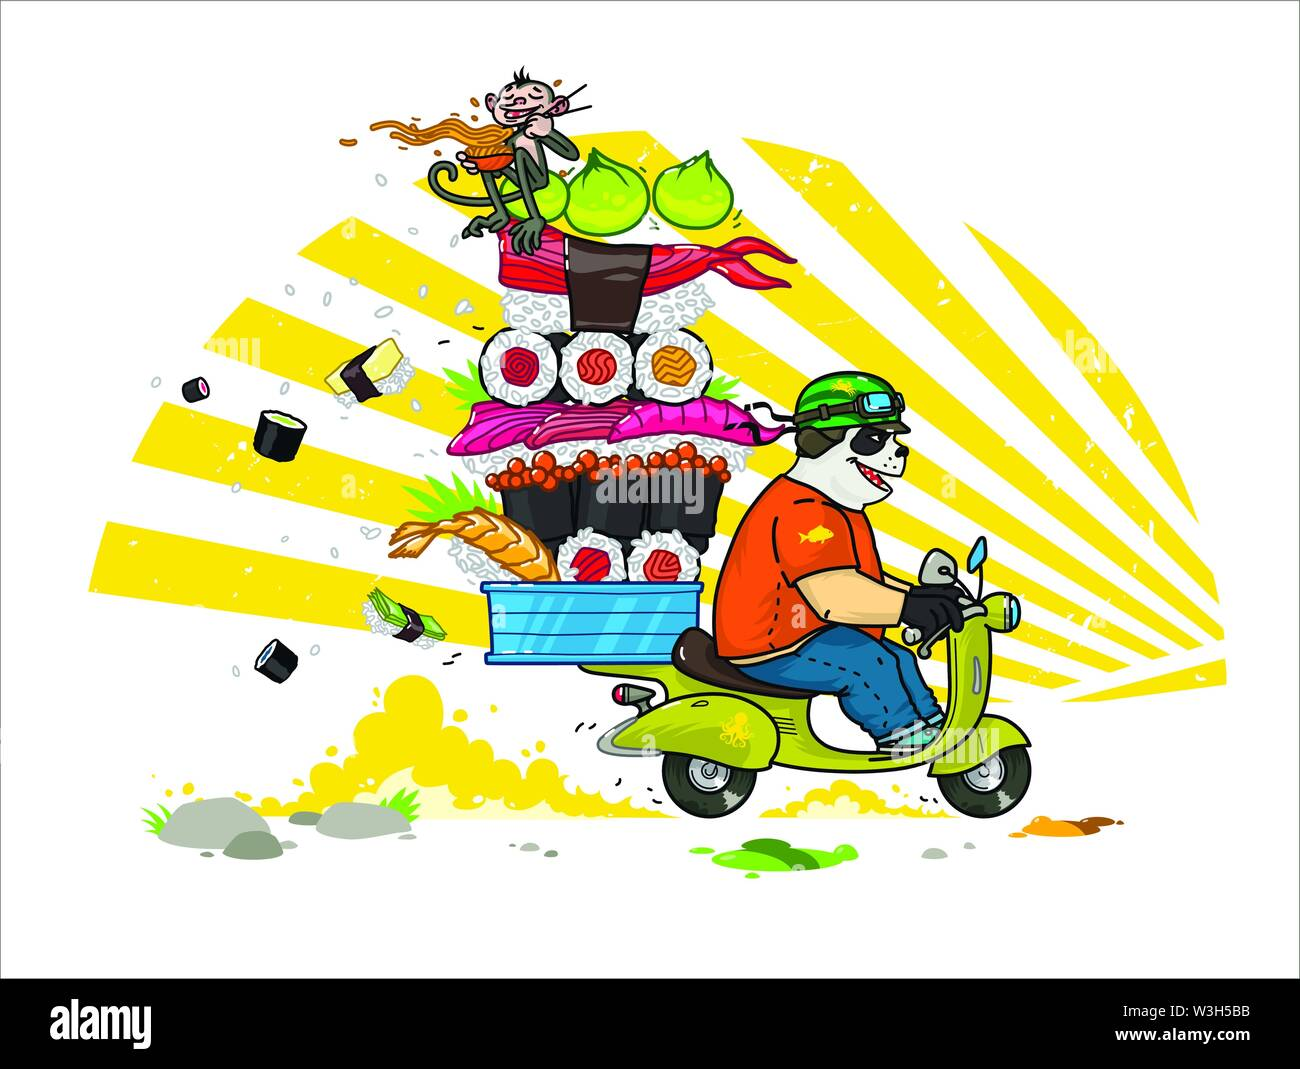 A cute cartoon panda delivers Asian food. Illustration of a courier panda delivering sushi, rolls. Panda is riding a scooter. The character is isolate - Stock Image